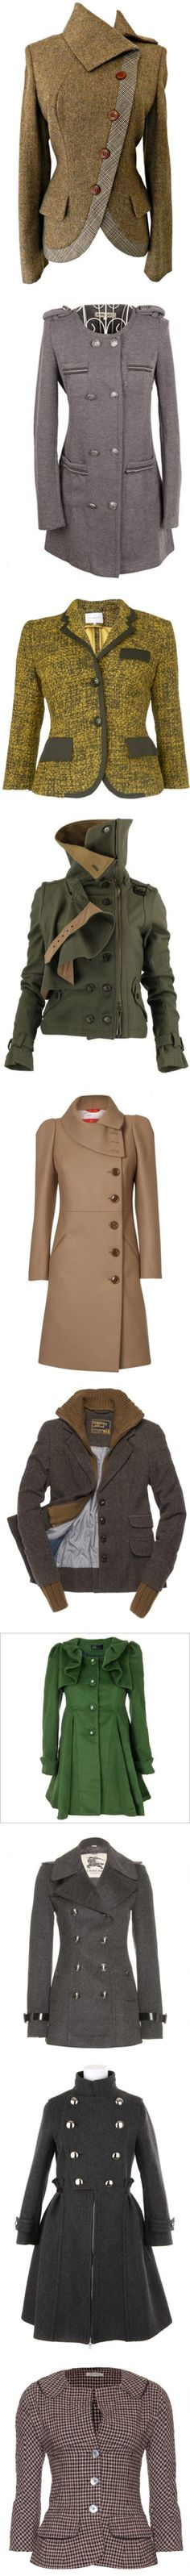 """""""Coated and Jacketed... marvelously so!"""" by teacosey ❤ liked on Polyvore"""